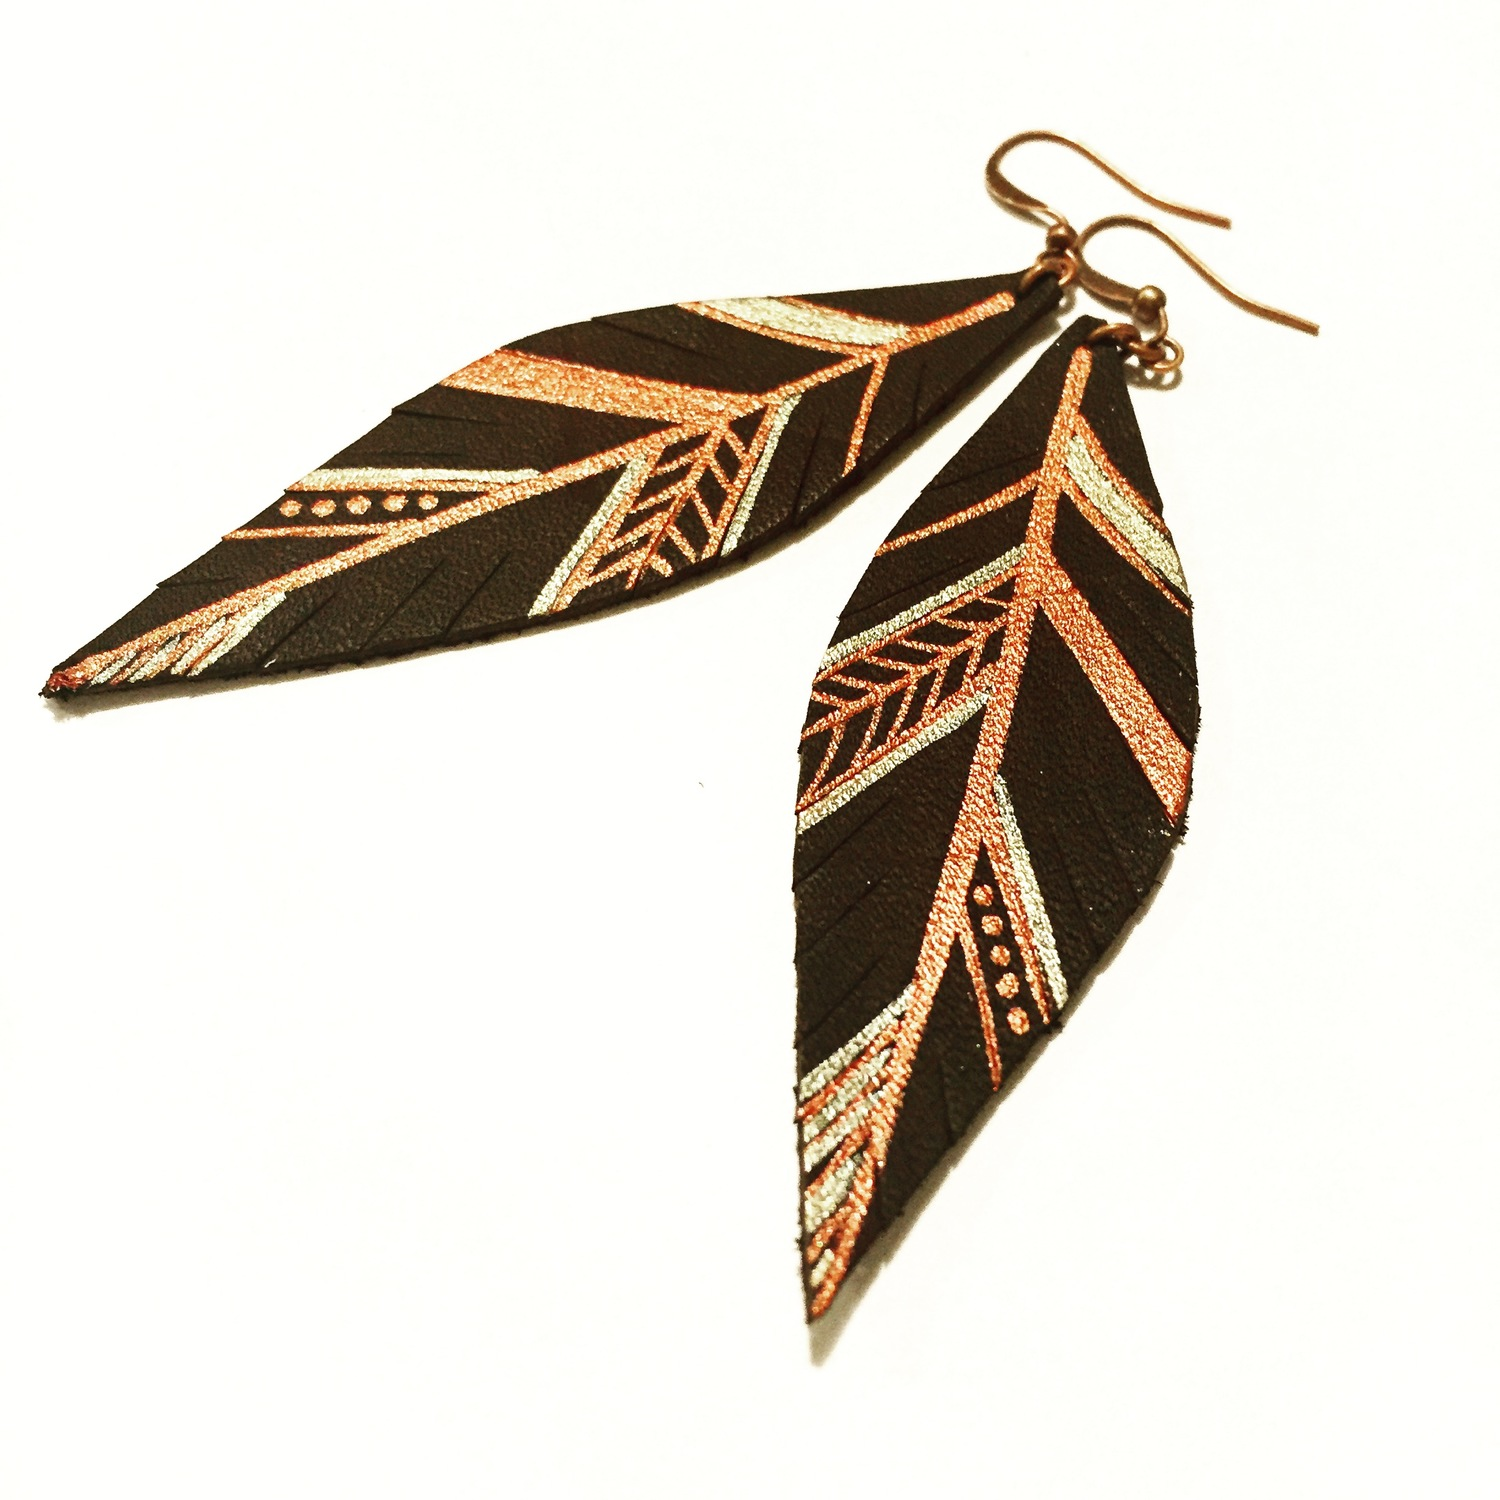 row sr feathered collections earrings stockton feather